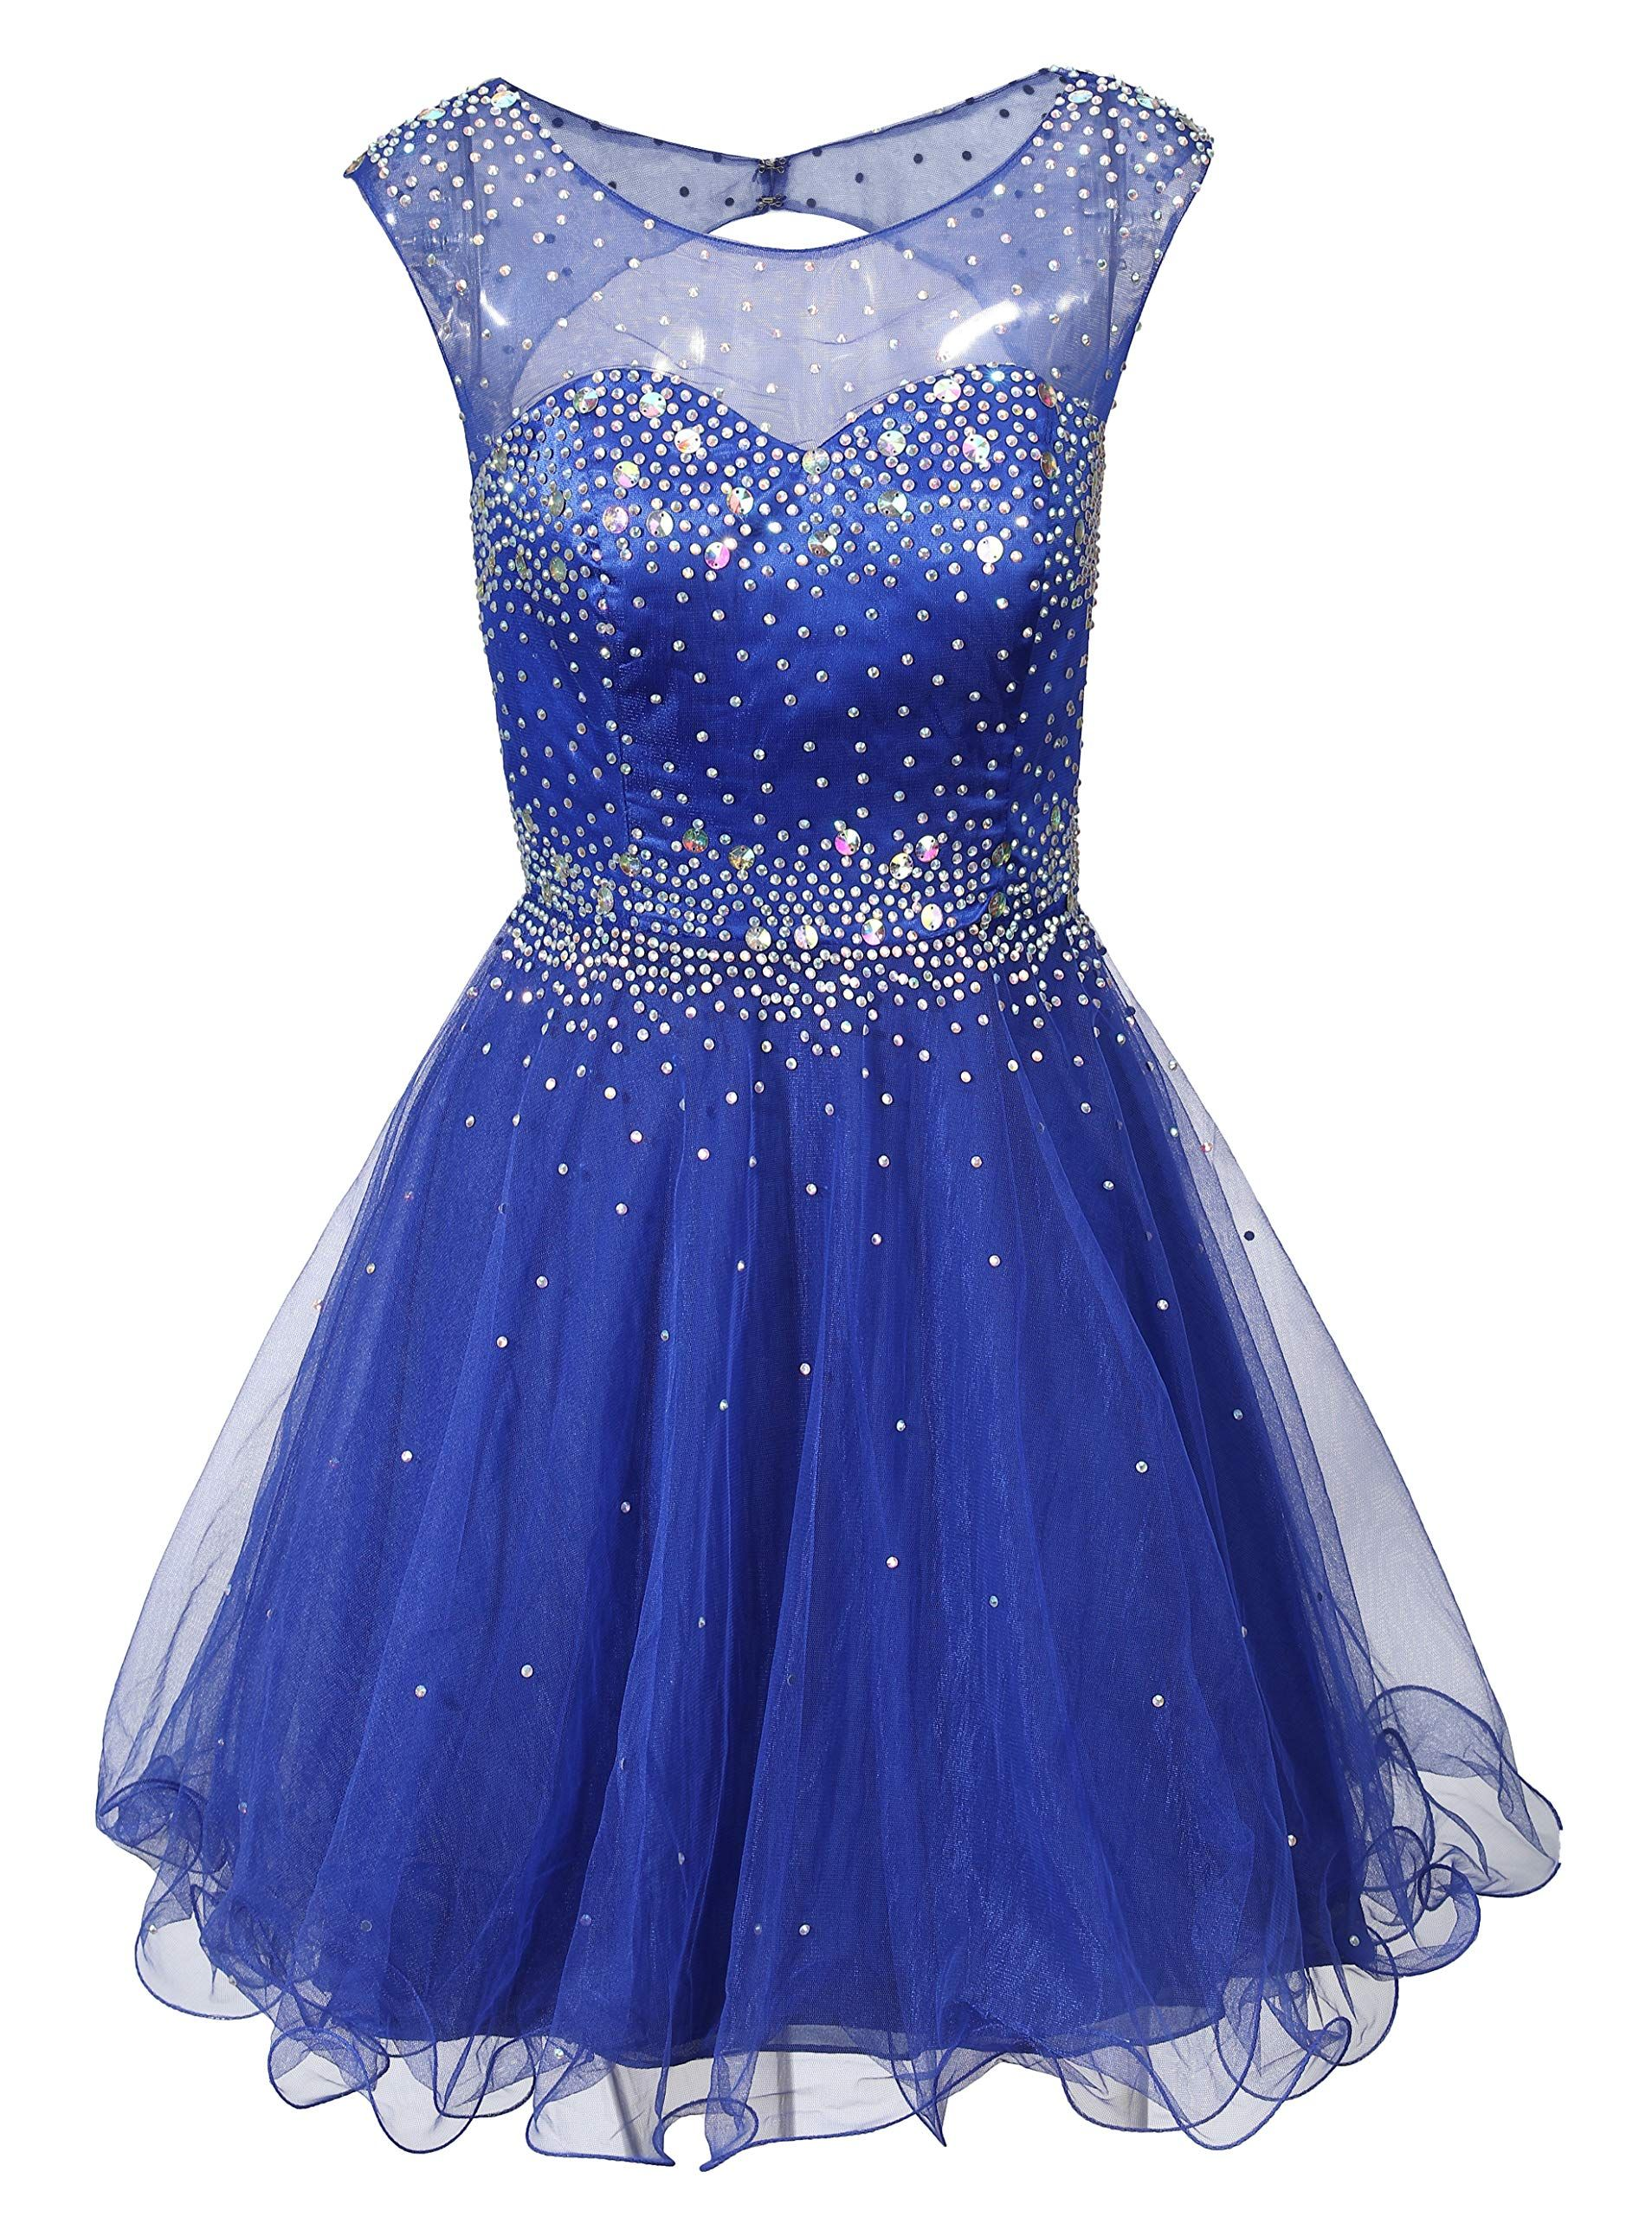 Mamilove Womens Short Beading Homecoming Dress For Juniors A Line Prom Ball Gown Size 10 Roya Homecoming Dresses Cheap Homecoming Dresses Fashion Clothes Women